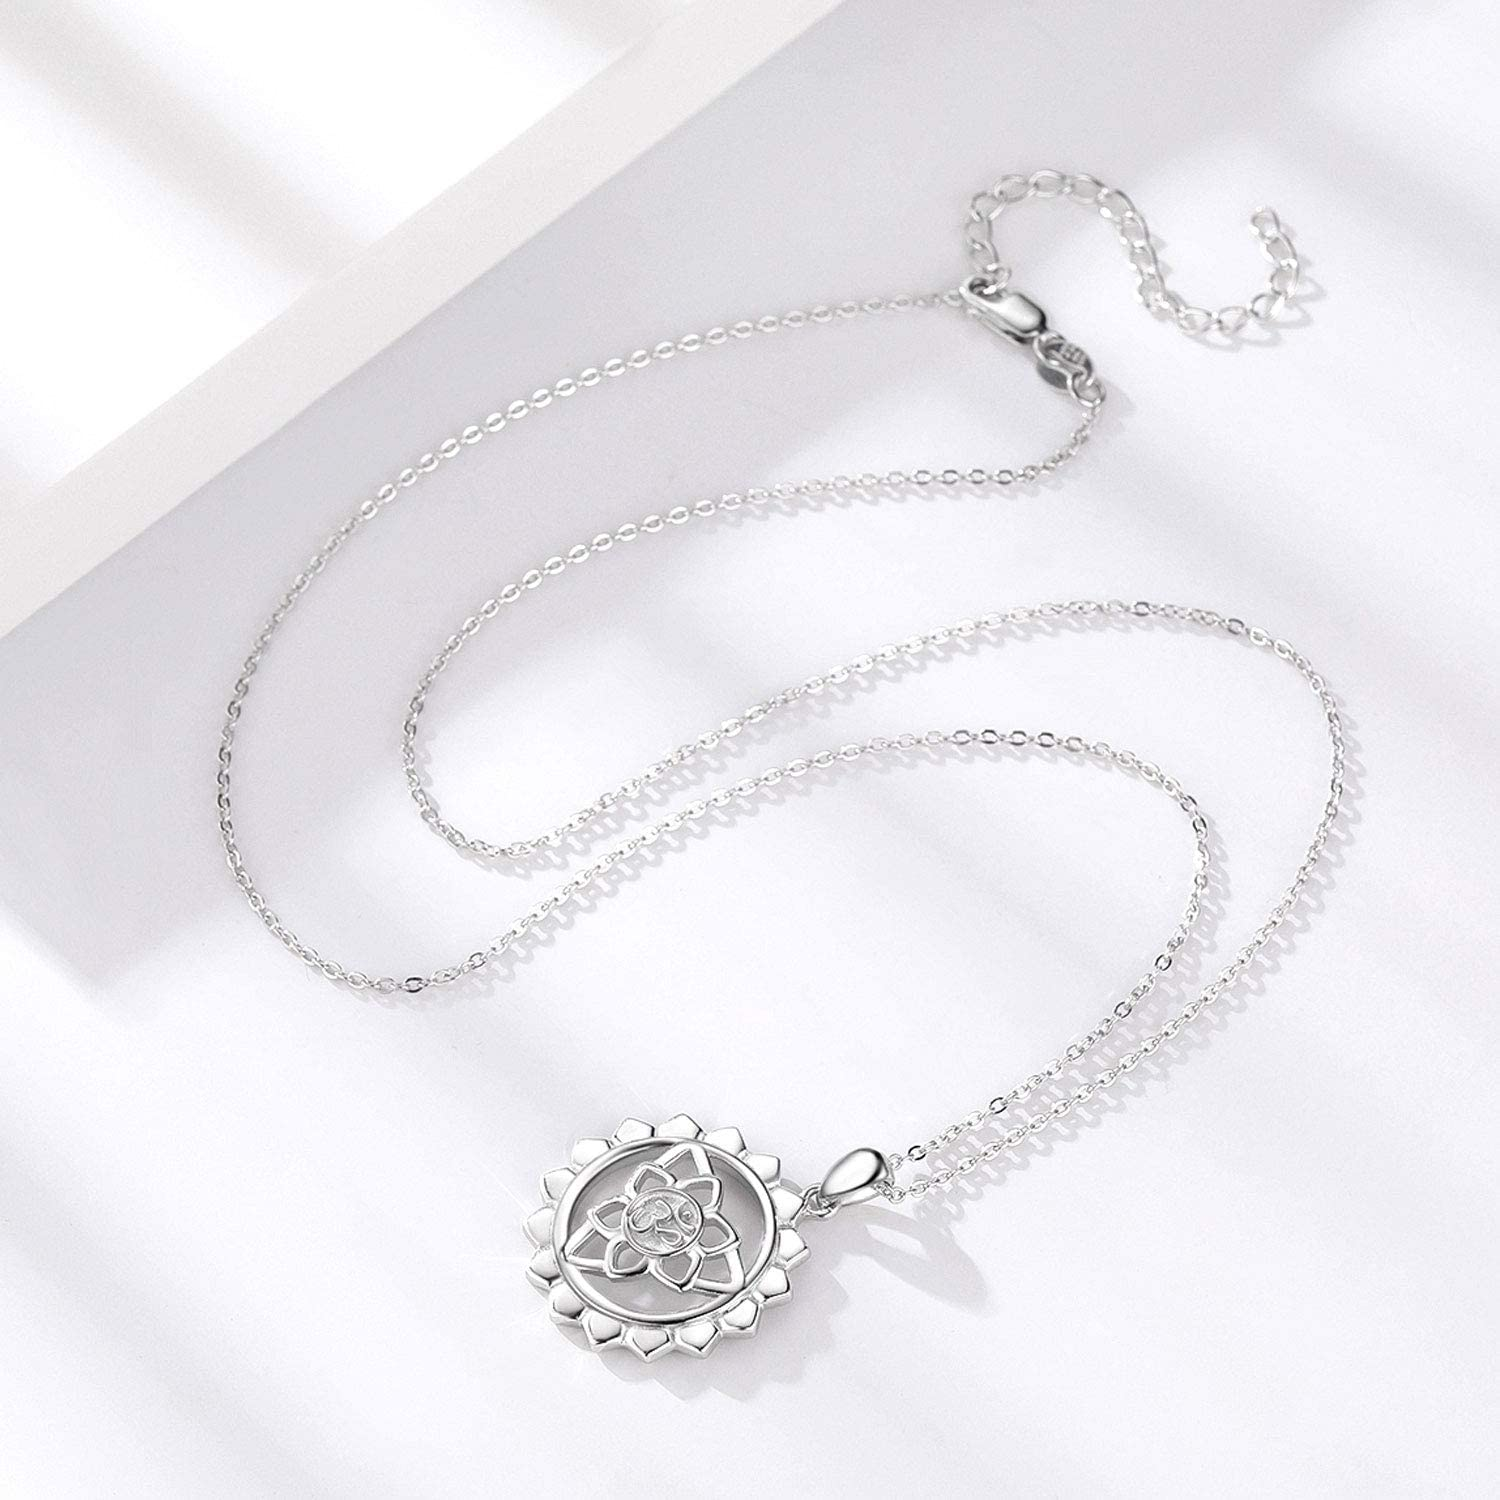 Lotus Flower Necklace 925 Sterling Silver Om Aum Yoga Pendant Jewelry Gifts for Women Girlfriend Birthday Mother/'s Day